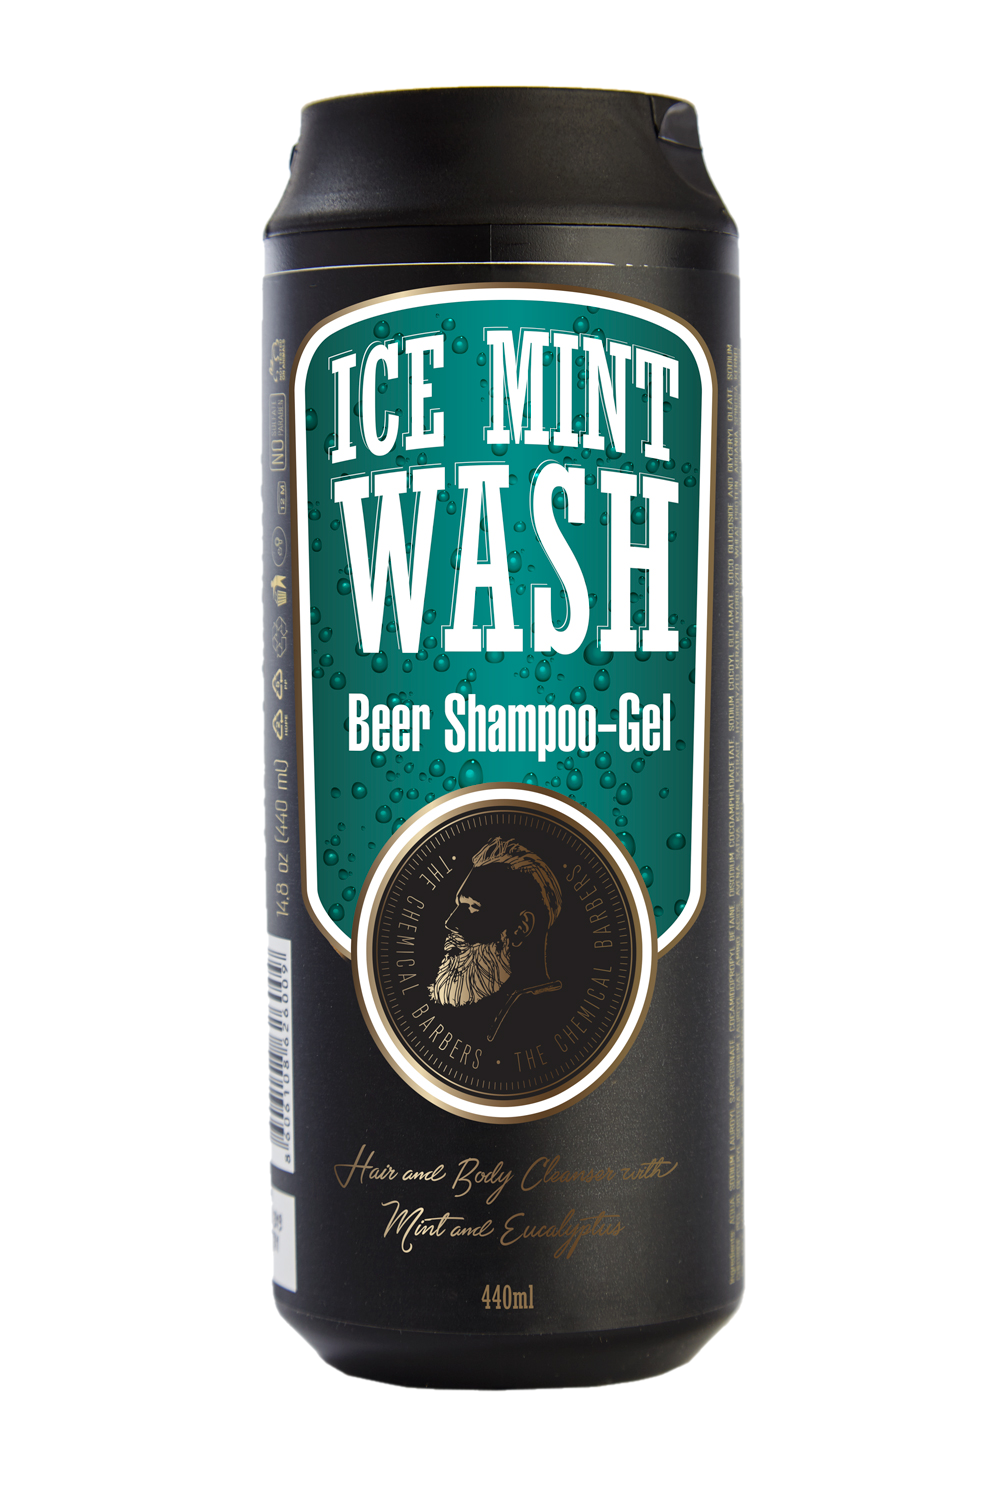 ICE MINT WASH